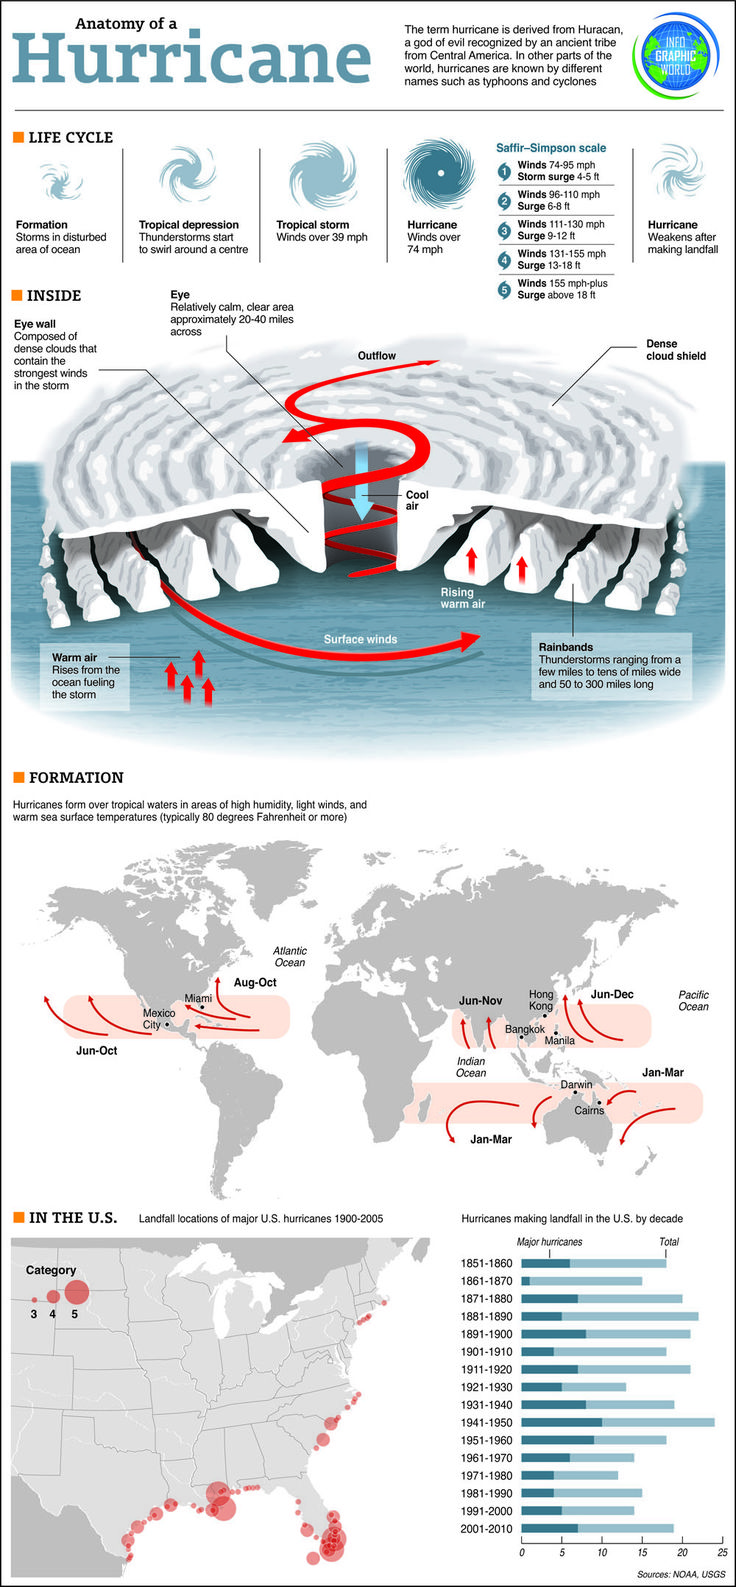 Interesting infographic on hurricane formation and history--could use for the hurricane preparedness patch